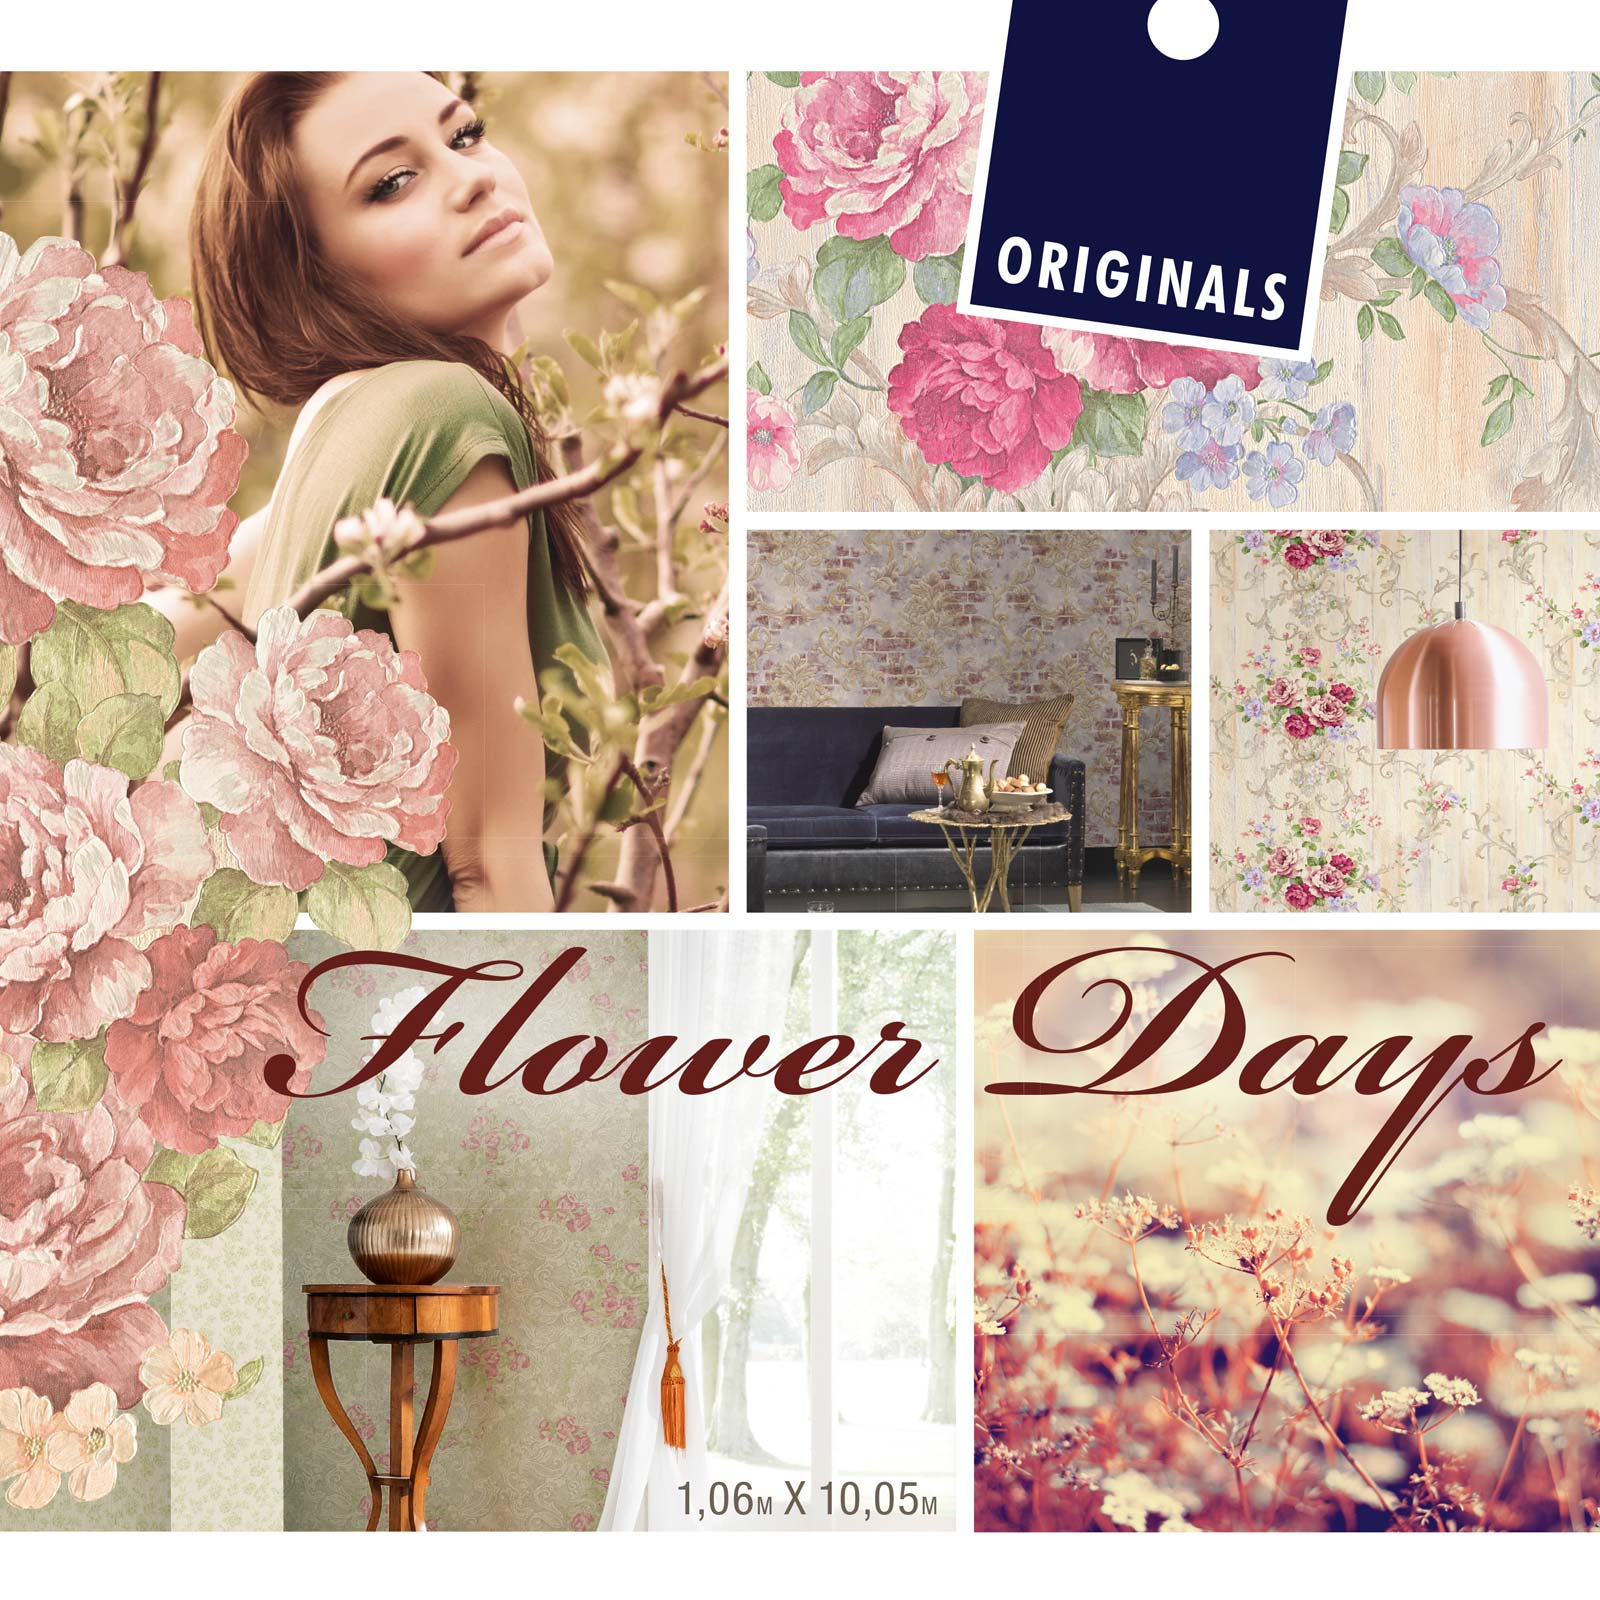 Originals Flower Days